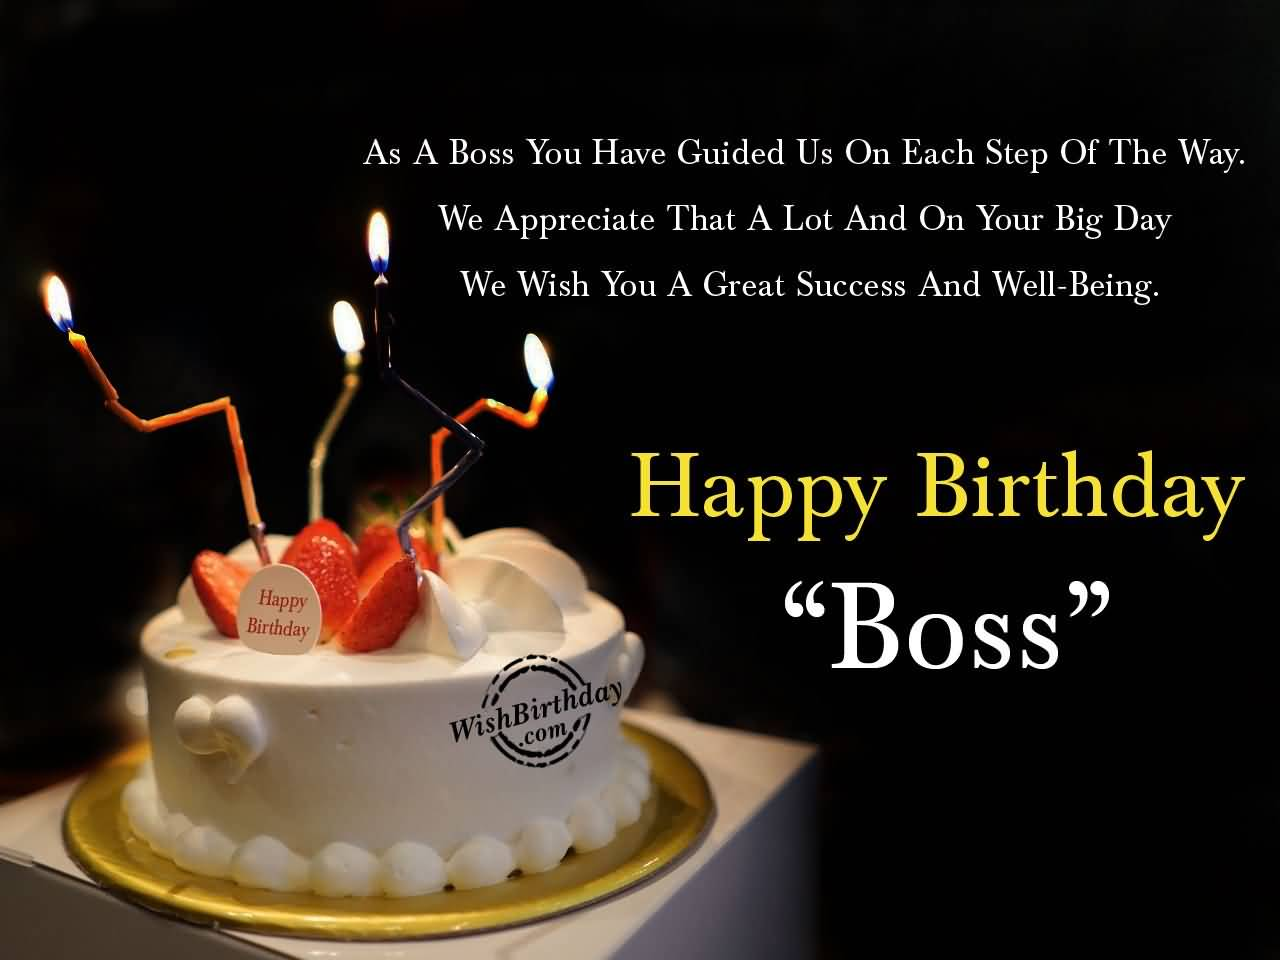 funny birthday message for boss from staff ; As-A-Boss-You-Have-Guided-Us-On-Each-Step-Of-The-Way-Happy-Birthday-Boss